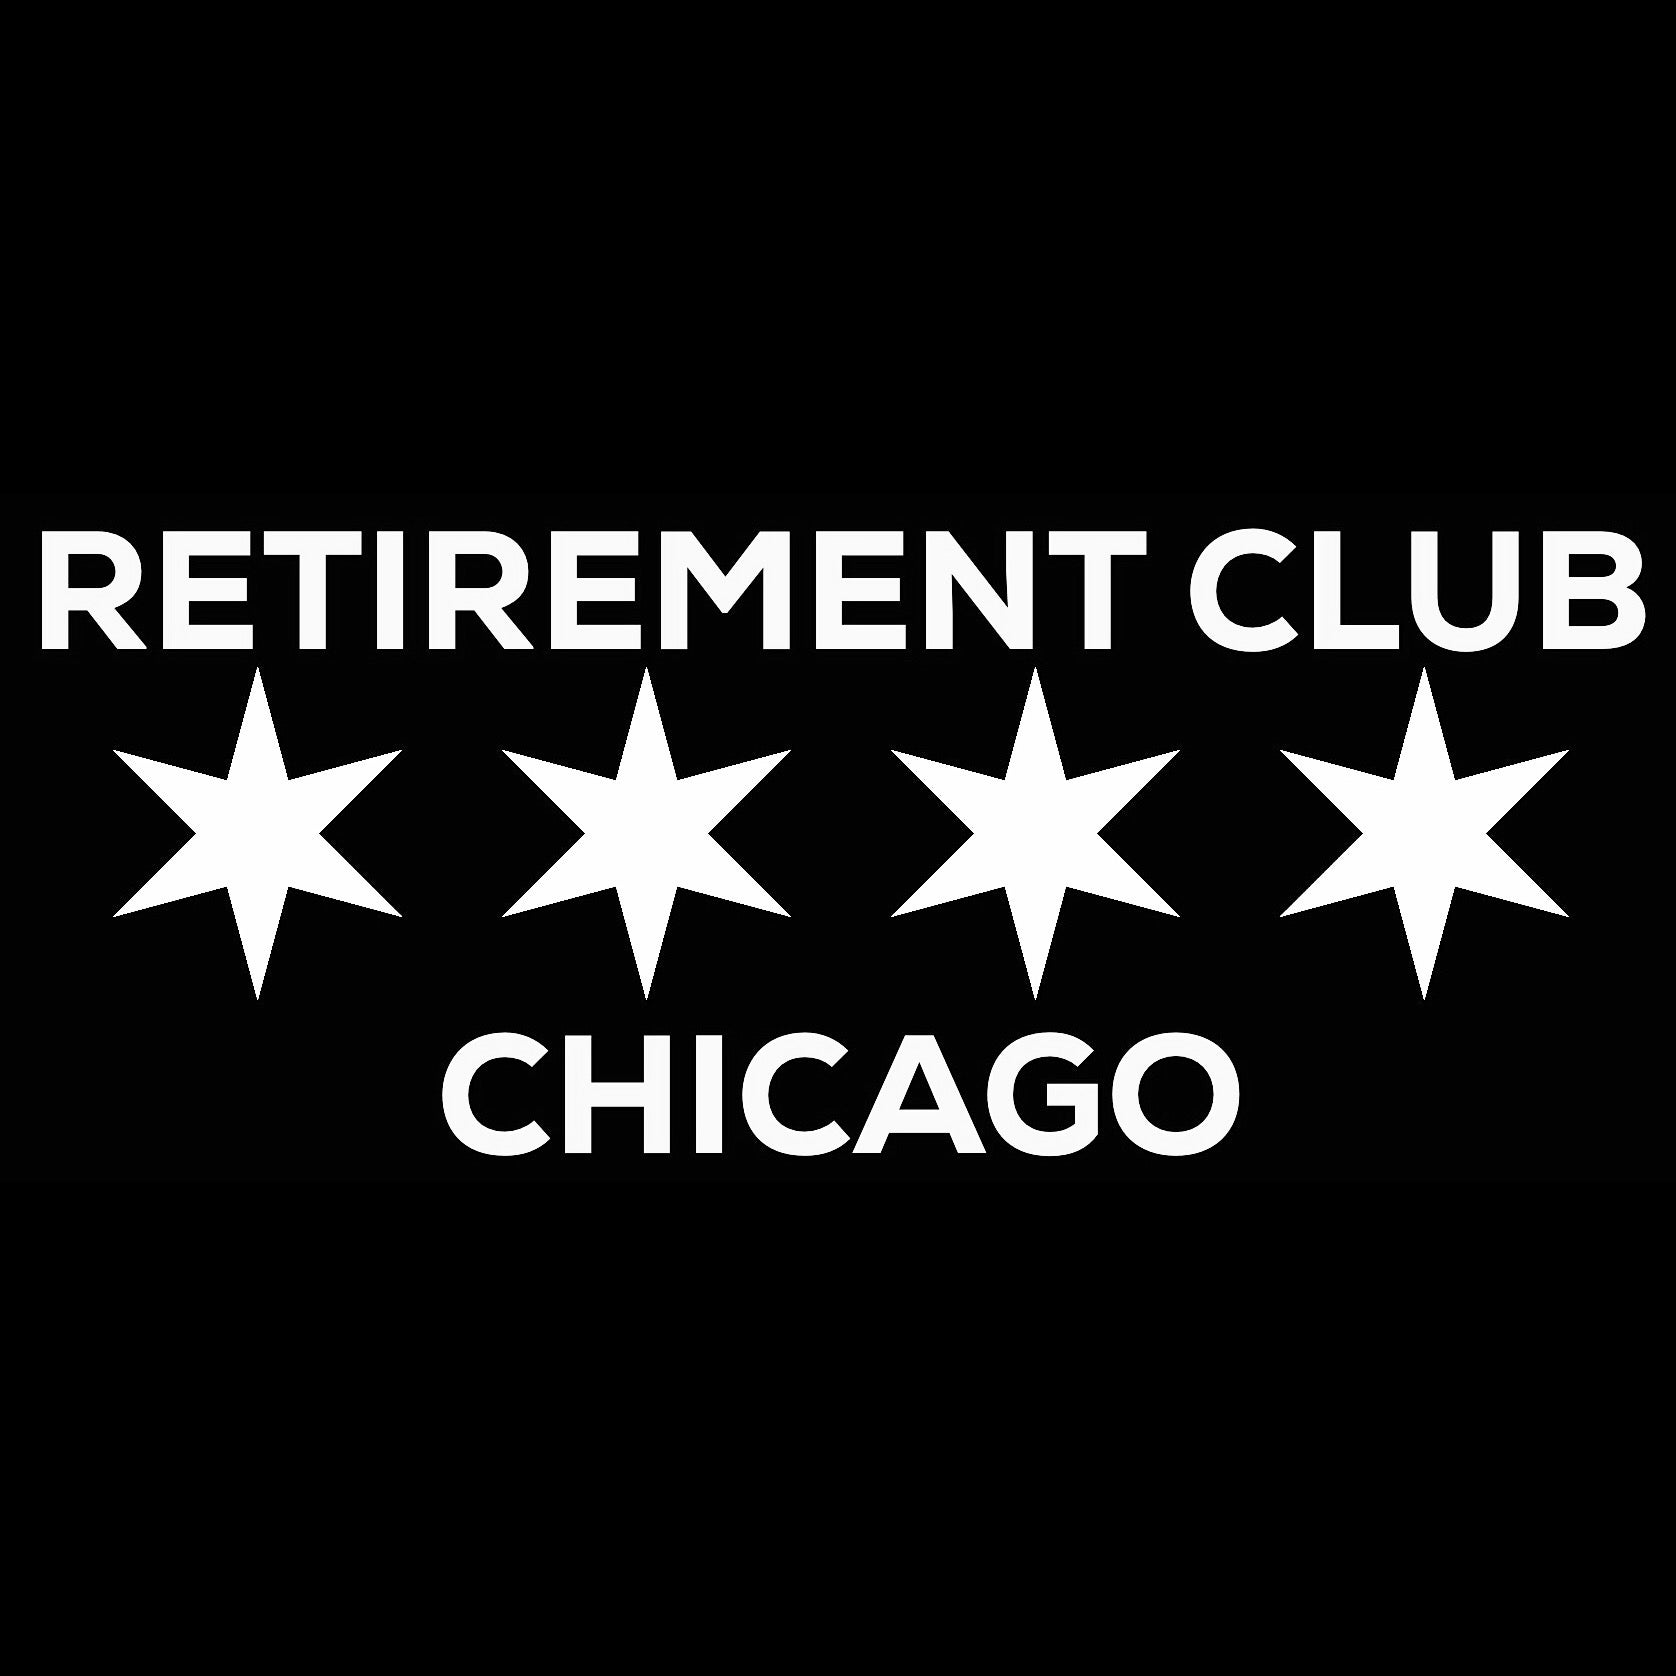 Retirement Club Chicago